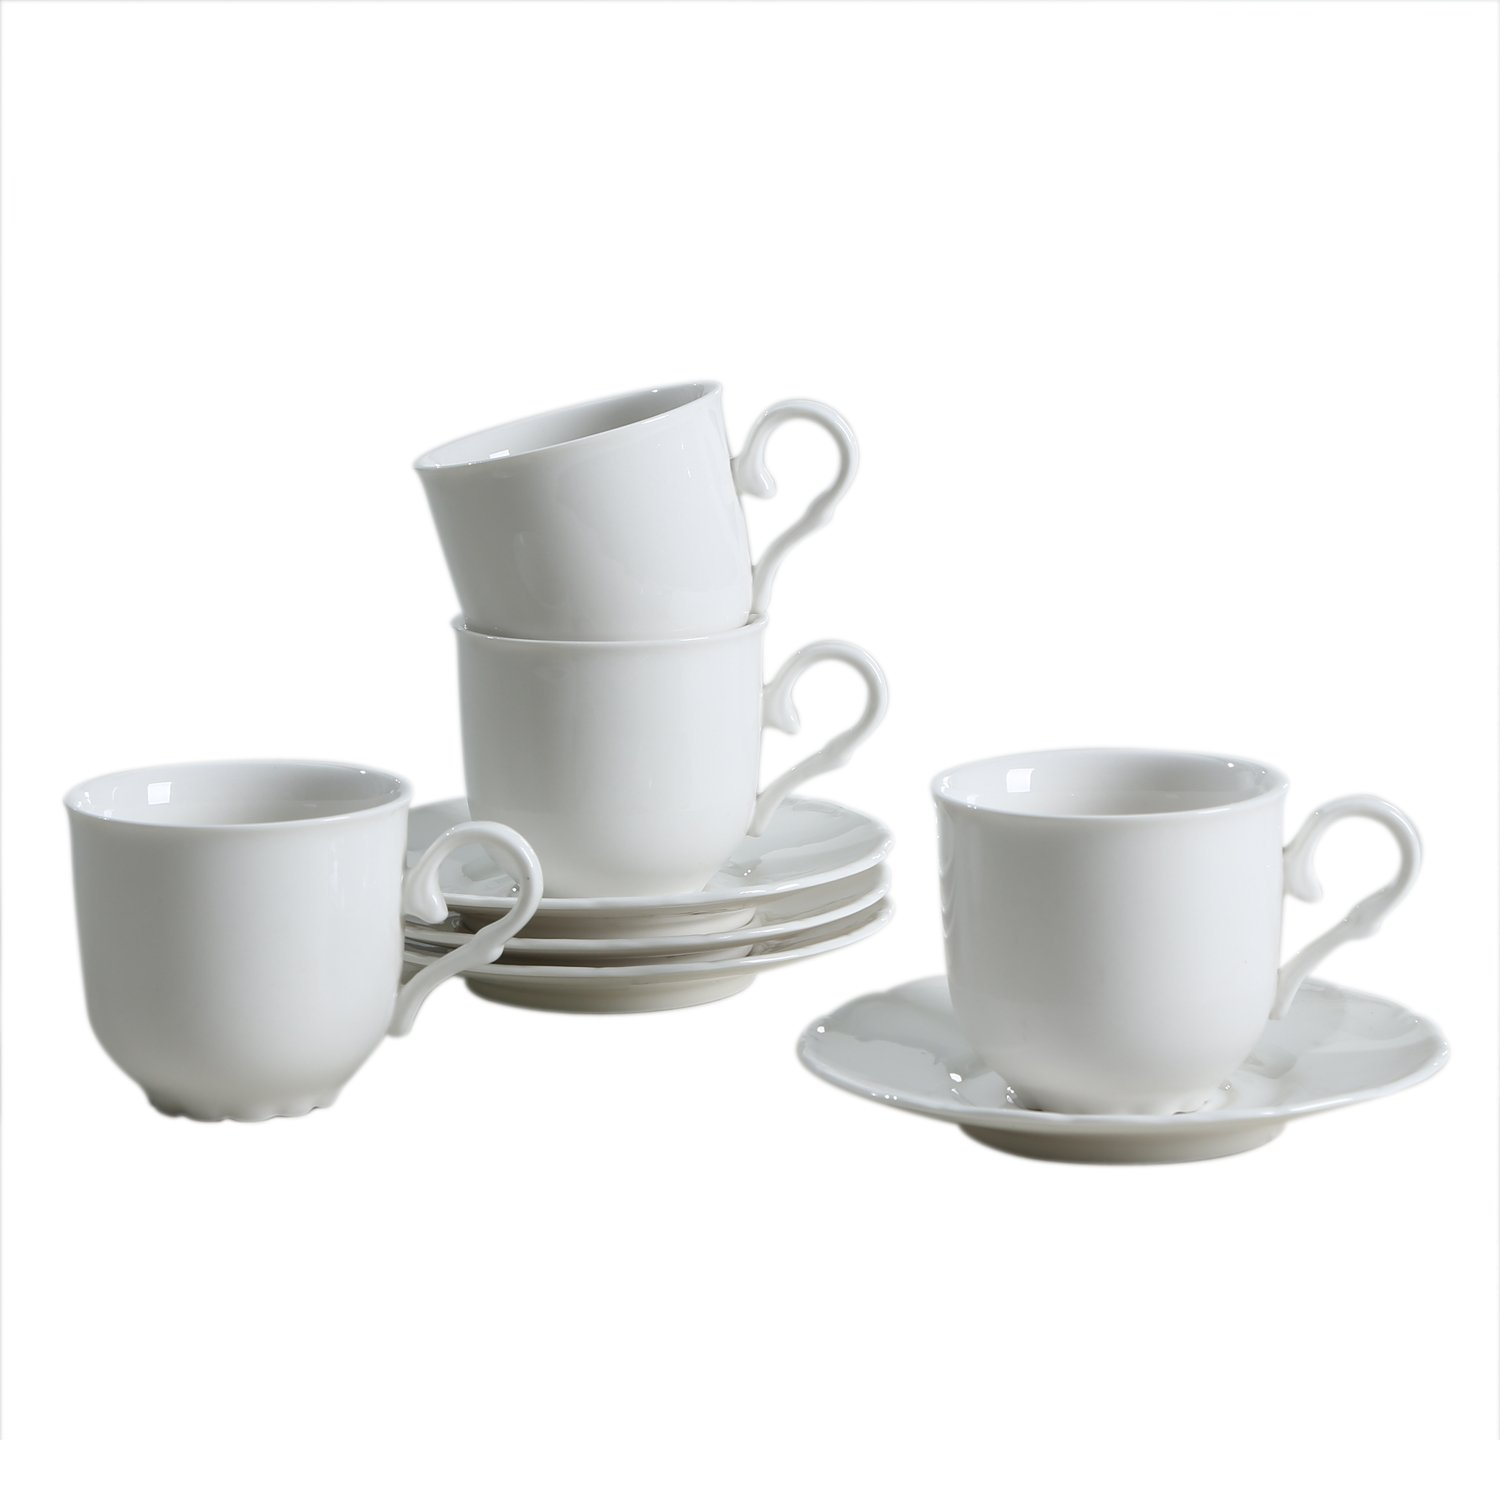 SOLECASA ''7-OZ/Set of 4'' Ceramic Espresso Coffee Cup and Saucer Set,Porcelain Tea Cup Set,Pure White-Great as Holiday Gift/Present